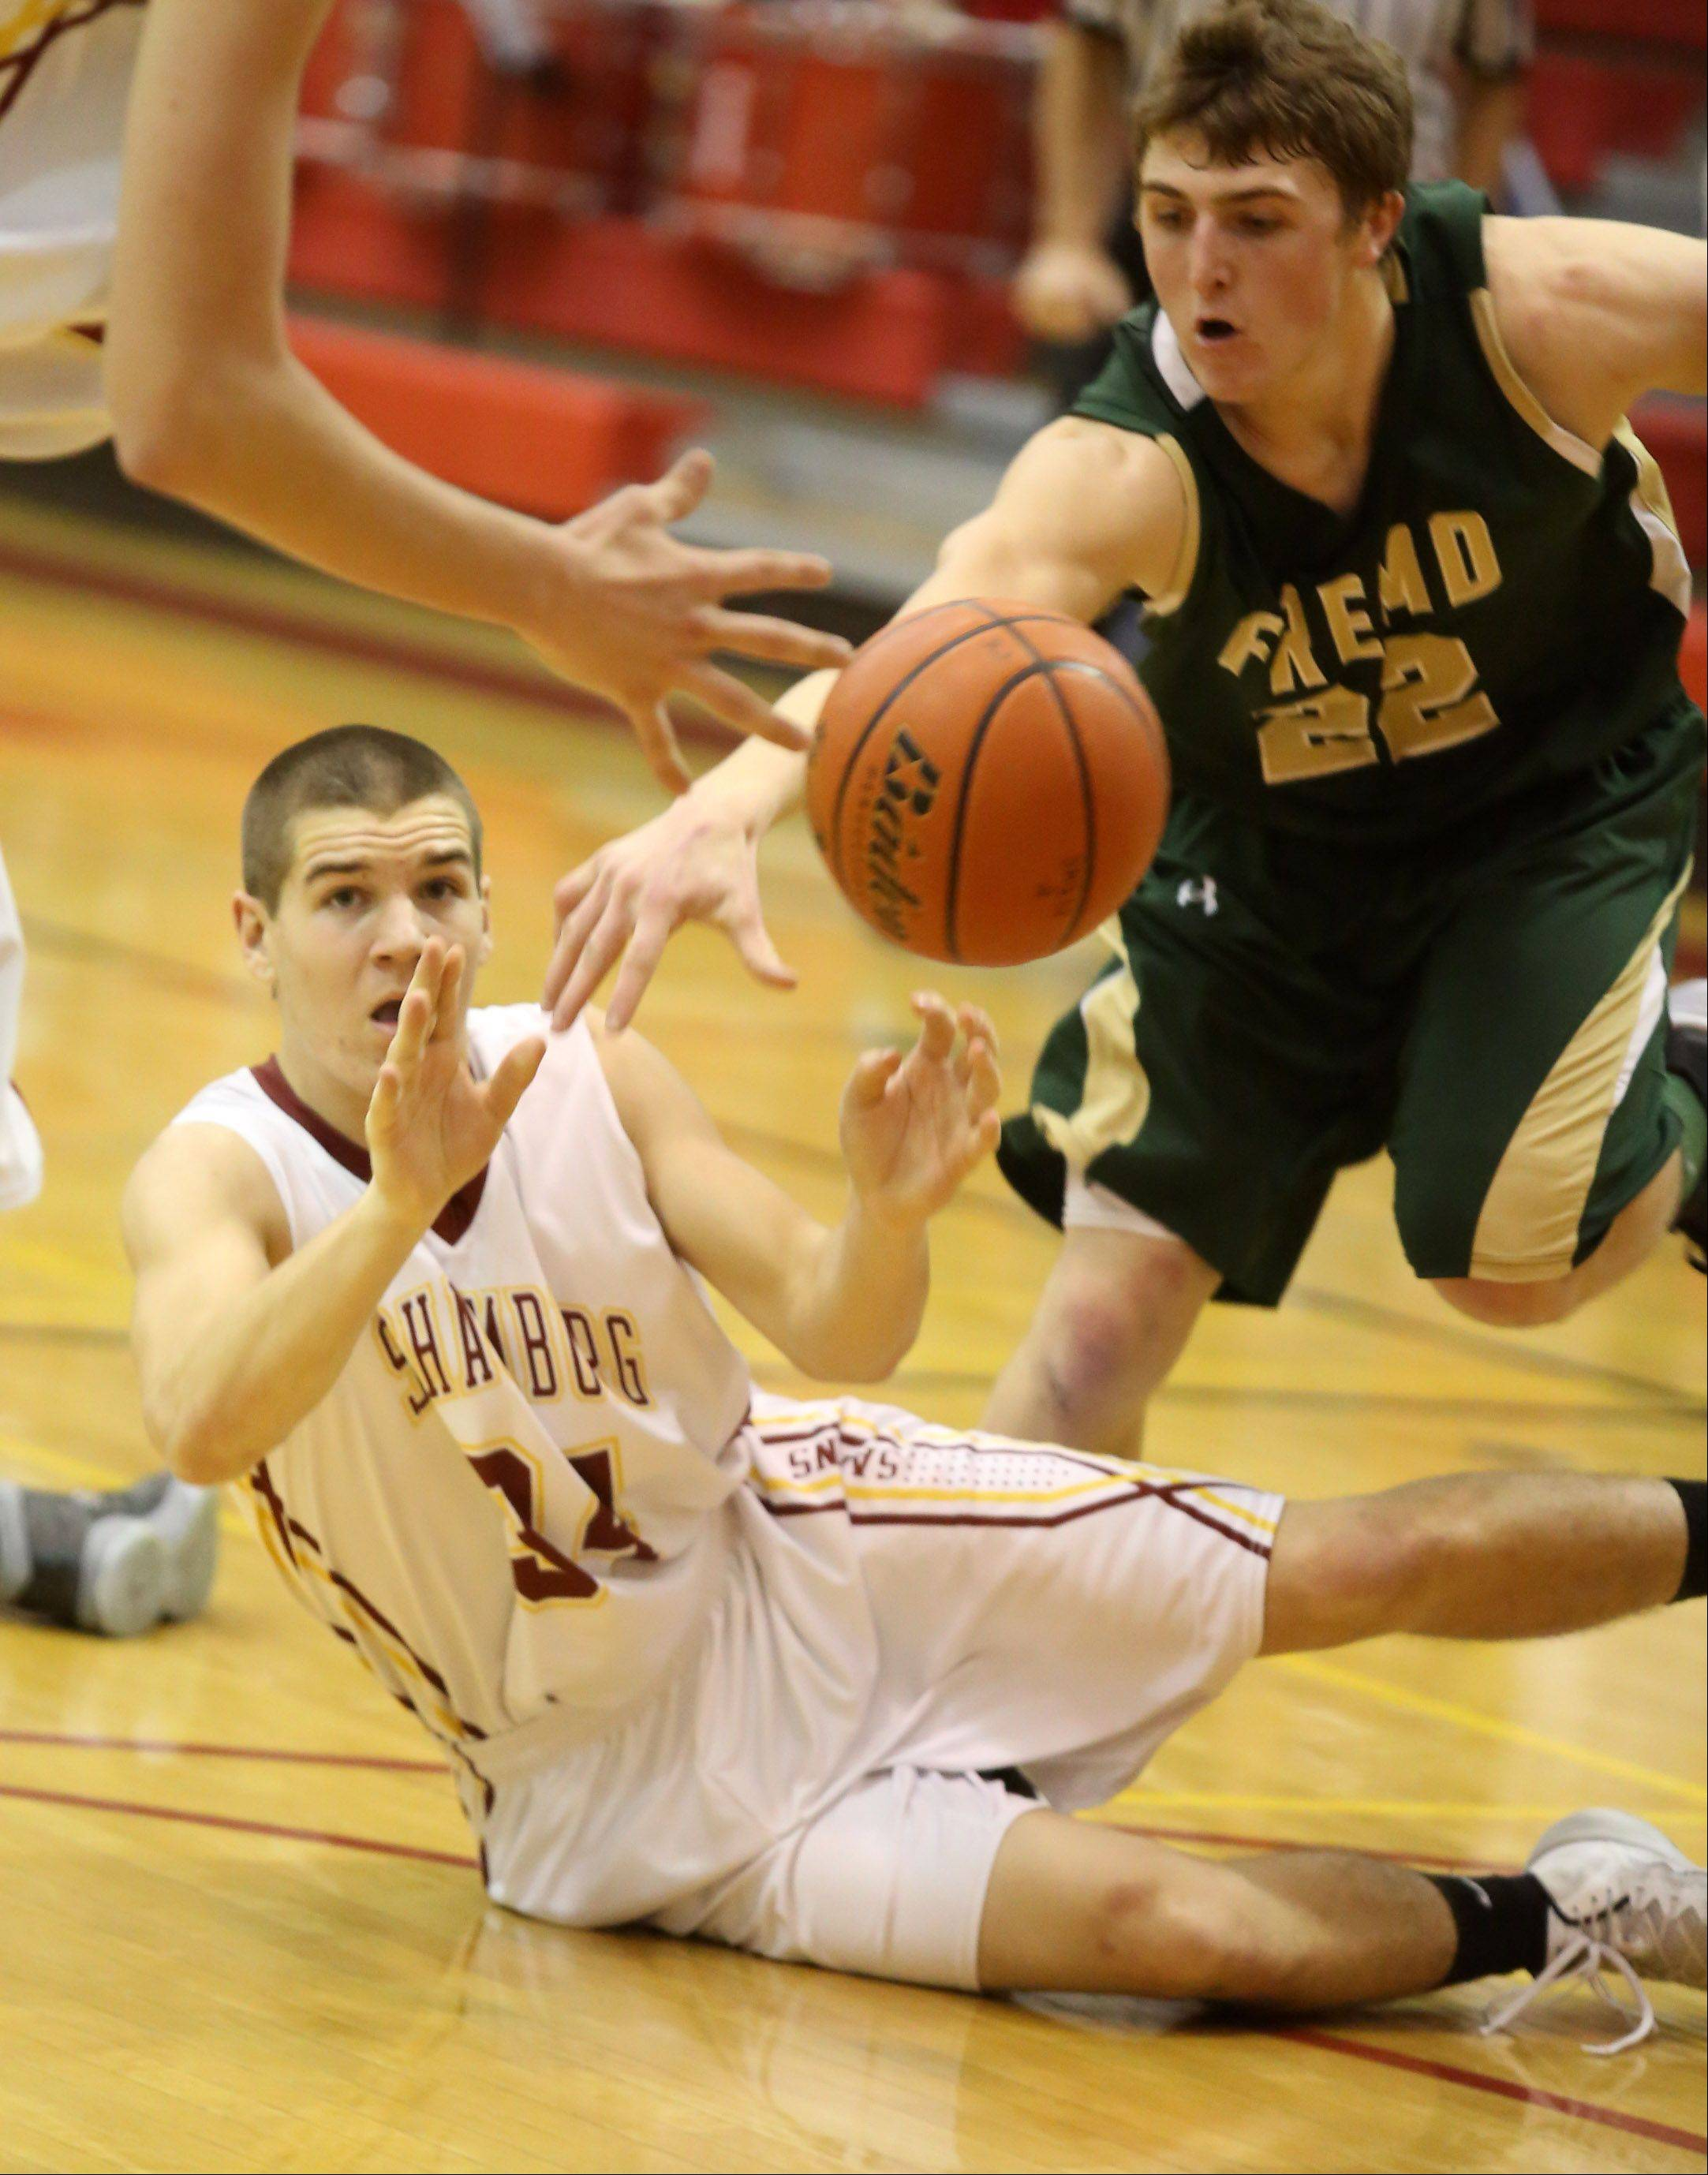 Schaumburg guard Christopher Mullaney passes the ball from the floor as Fremd defender Garrett Groot reaches for the ball on Friday in Schaumburg.